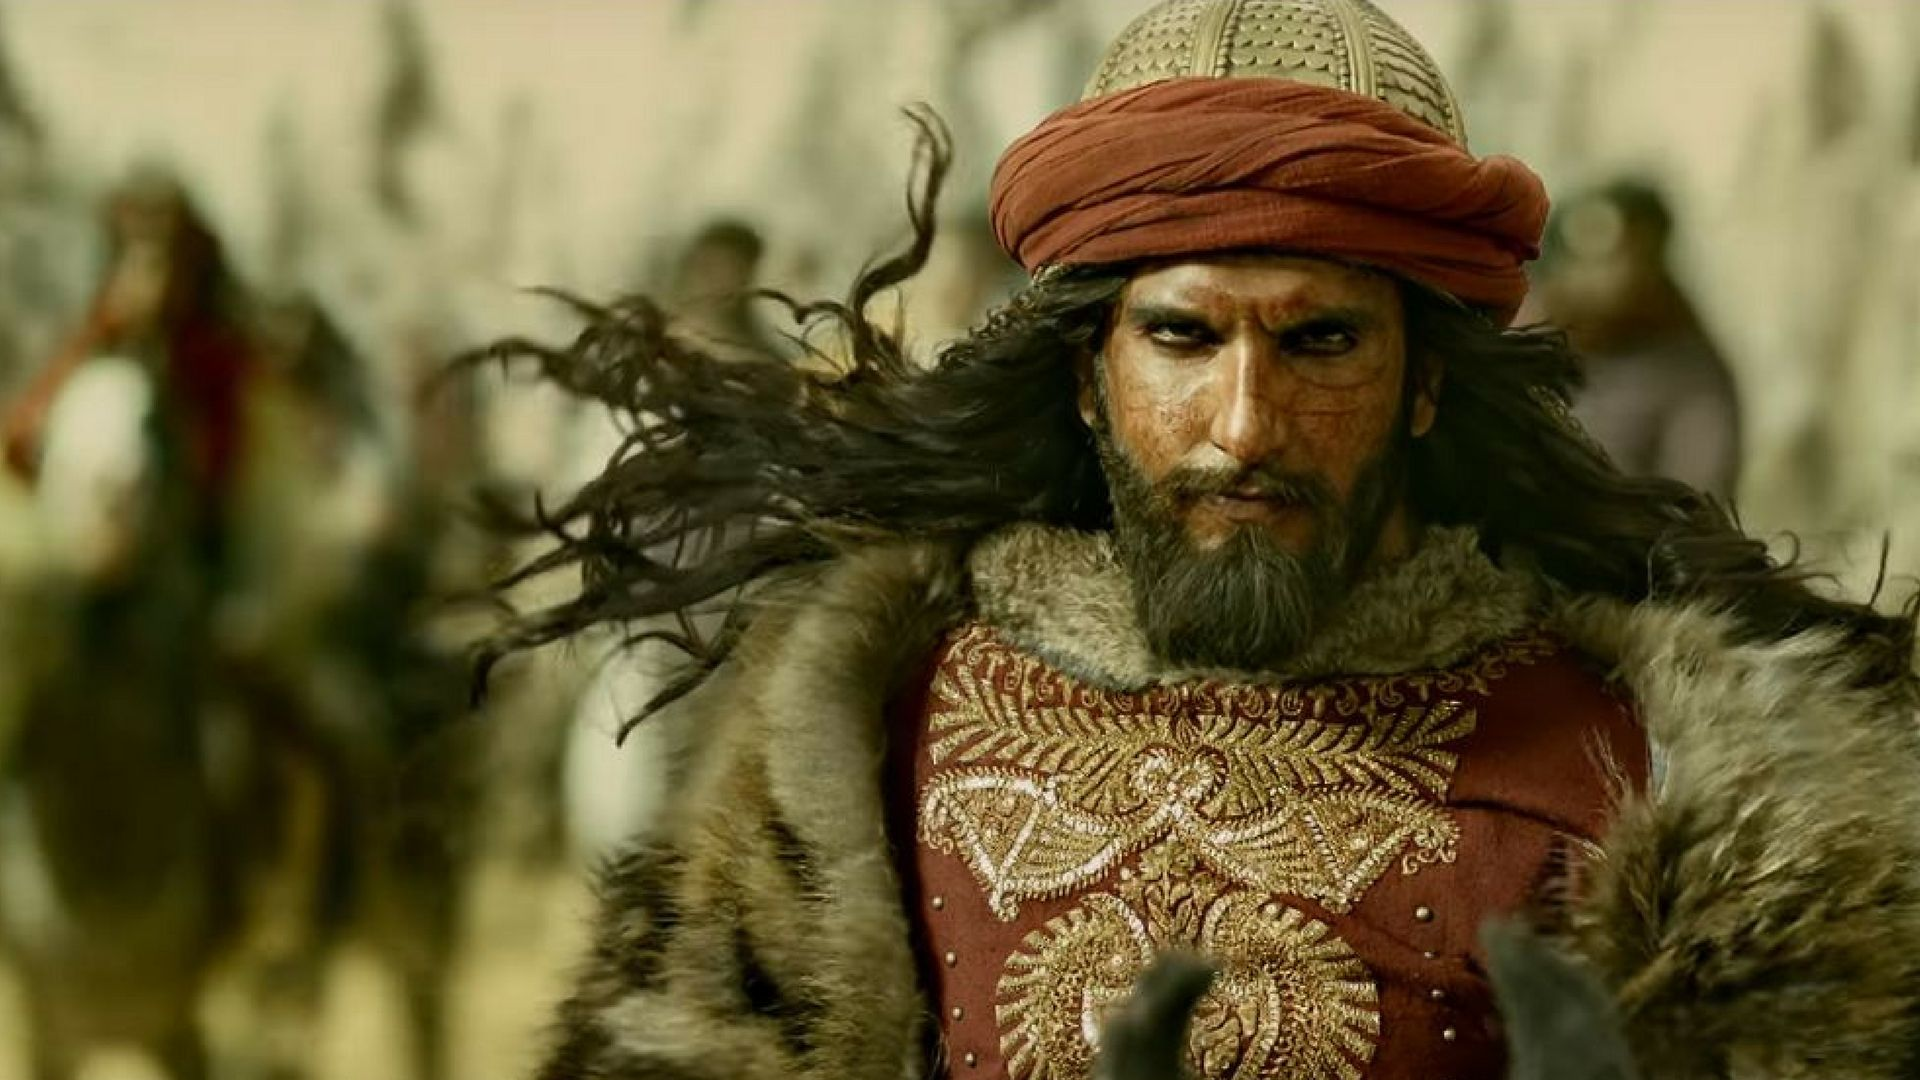 Ranveer Singh as Khilji in Padmaavat